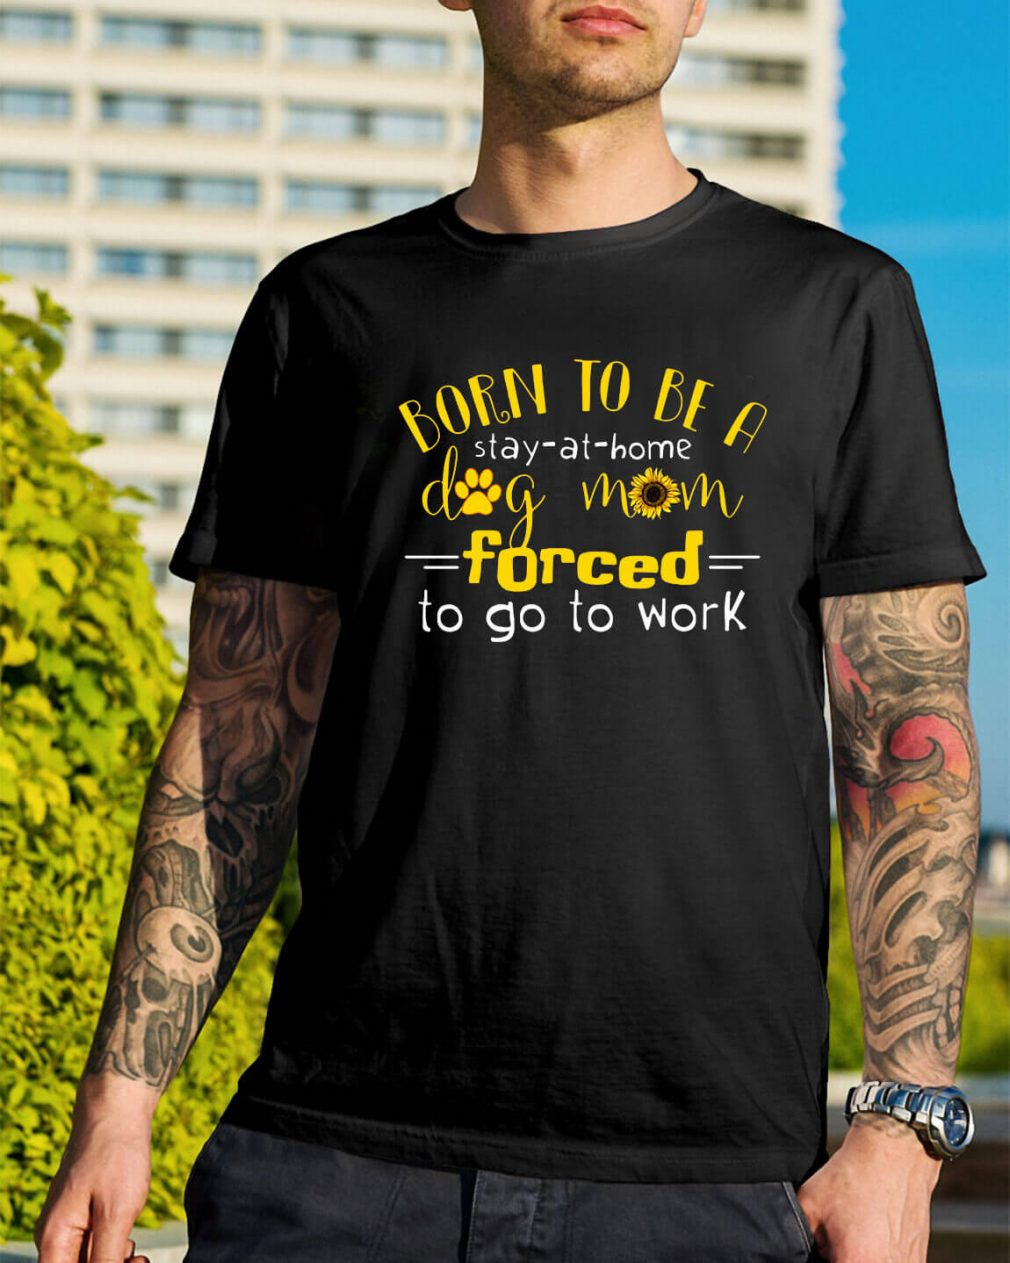 Born to be a stay-at-home dog mom forced to go to work Guys Shirt